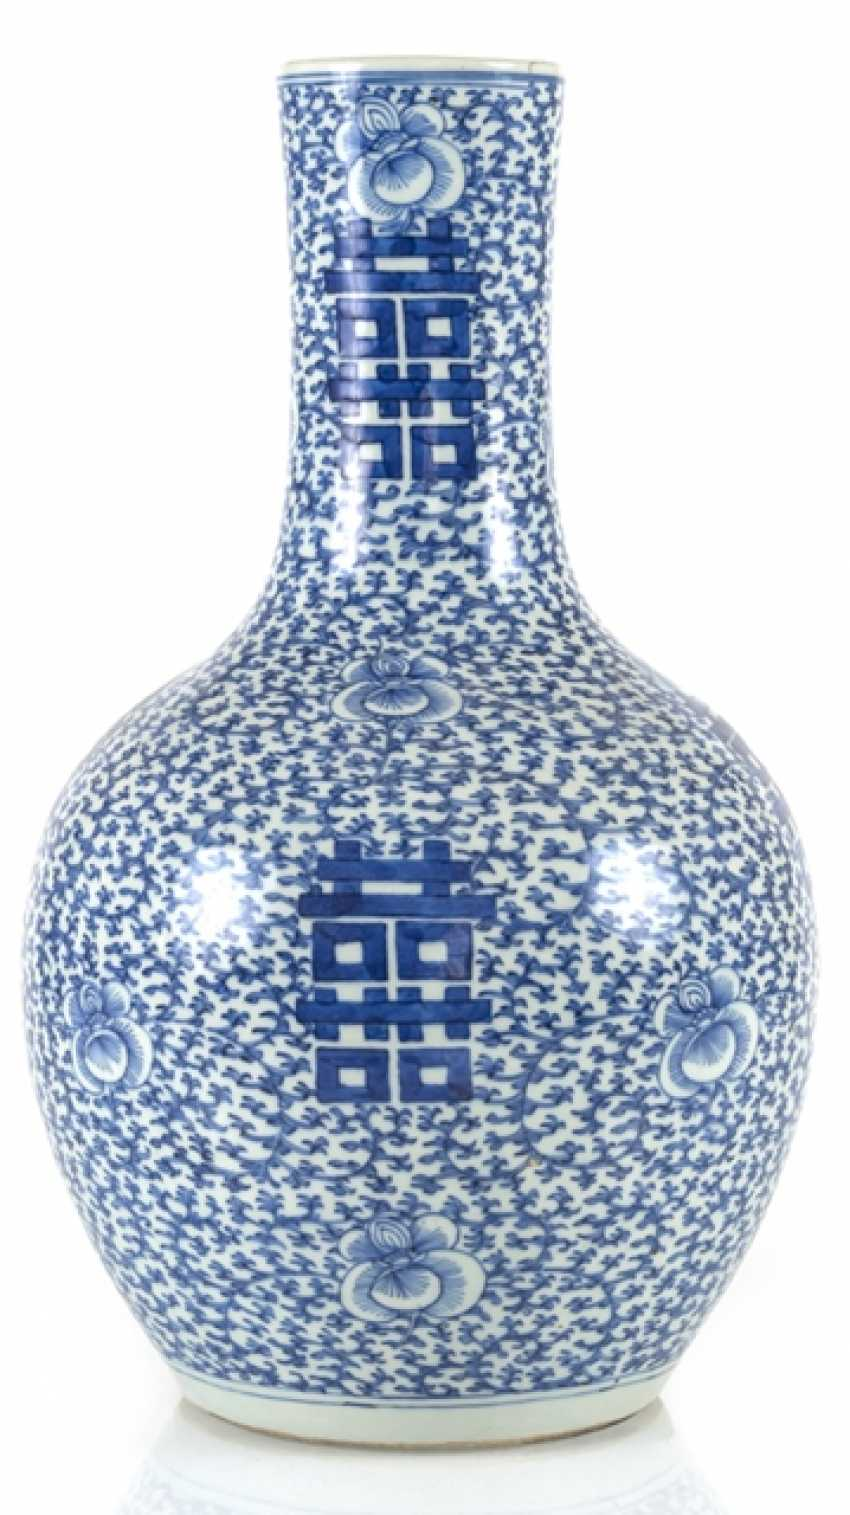 Underglaze blue porcelain vase with 'shuangxi'decor - photo 1